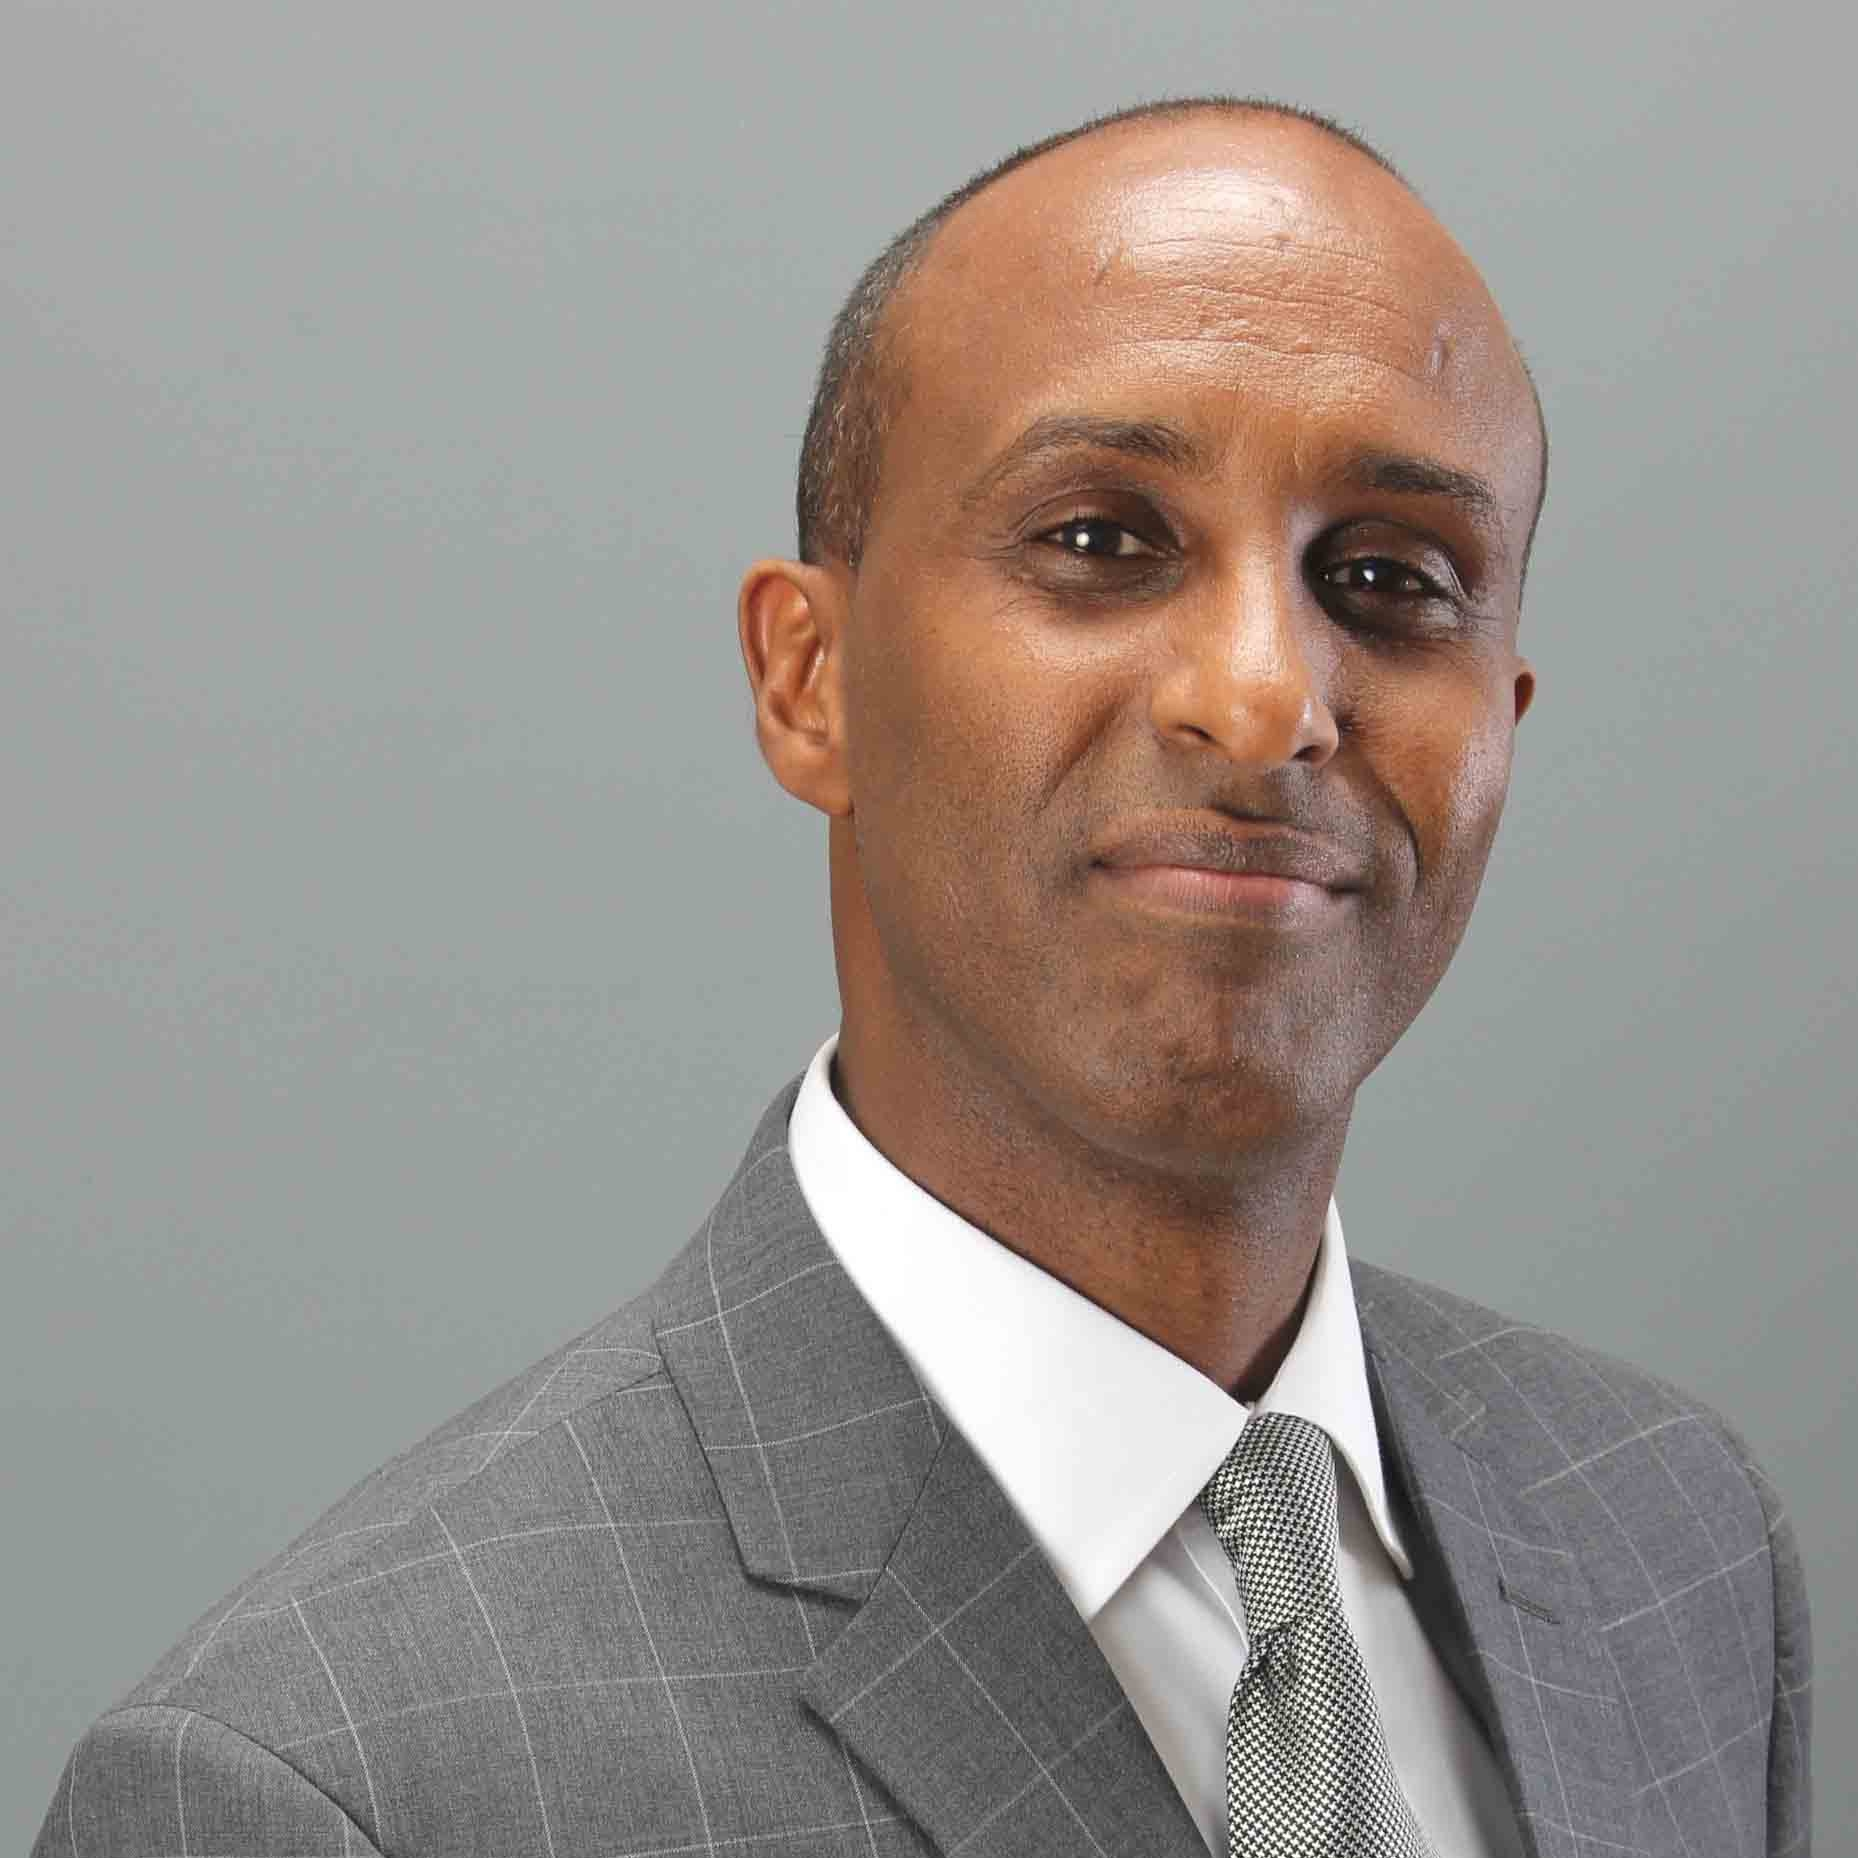 Jama a. ibrahim - ATTORNEYJama Ibrahim is a founding and co-managing partner of Ibrahim & Rao LLP. Mr. Ibrahim practices all aspects of U.S. Immigration and Nationality Law. He assists individuals and families in deportation cases, green cards applications, temporary visas and naturalization/citizenship matters. Mr. Ibrahim is an expert in asylum law and represents clients with humanitarian applications, including U and S visas, as well as applications under the Violence Against Women Act (VAWA). Mr. Ibrahim also assists employers and corporate clients with employment based visas including H1B, H2B, L, E, P, R1 visas, as well as with employment based labor certifications and applications for permanent residence, including EB-1, EB-2 and EB-5 applications.As an experienced litigator, Mr. Ibrahim has handled complex deportation cases representing clients from all over the world in hundreds of trials before the U.S. Immigration Court around the country, including Atlanta and Stewart County (Georgia), Charlotte (NC), New York (NY), New Orleans (LA), Memphis (TN), Cleveland and Cincinnati (OH), Miami and Orlando (FL), Los Angeles (CA), Arlington (VA), Baltimore (MD), and El Paso (TX). Mr. Ibrahim also handles appeals before the Board of Immigration Appeals (BIA) and assists in other federal immigration matters.Mr. Ibrahim's background as someone who has lived in several countries and traveled around the world before legally emigrating to the U.S. from Canada makes the perfect immigration lawyer with knowledge of the immigration needs of his clients and families. Mr. Ibrahim graduated with a Bachelor's degree in History with honors from Carleton University, located in Ottawa, Canada. He then went on to attend the University of Ottawa law school and graduated with an LLB (Juris Doctor). During his law school years Mr. Ibrahim worked with the University of Ottawa Community Legal Clinic (a pro bono legal aide service) where he gained firsthand experience in client representa